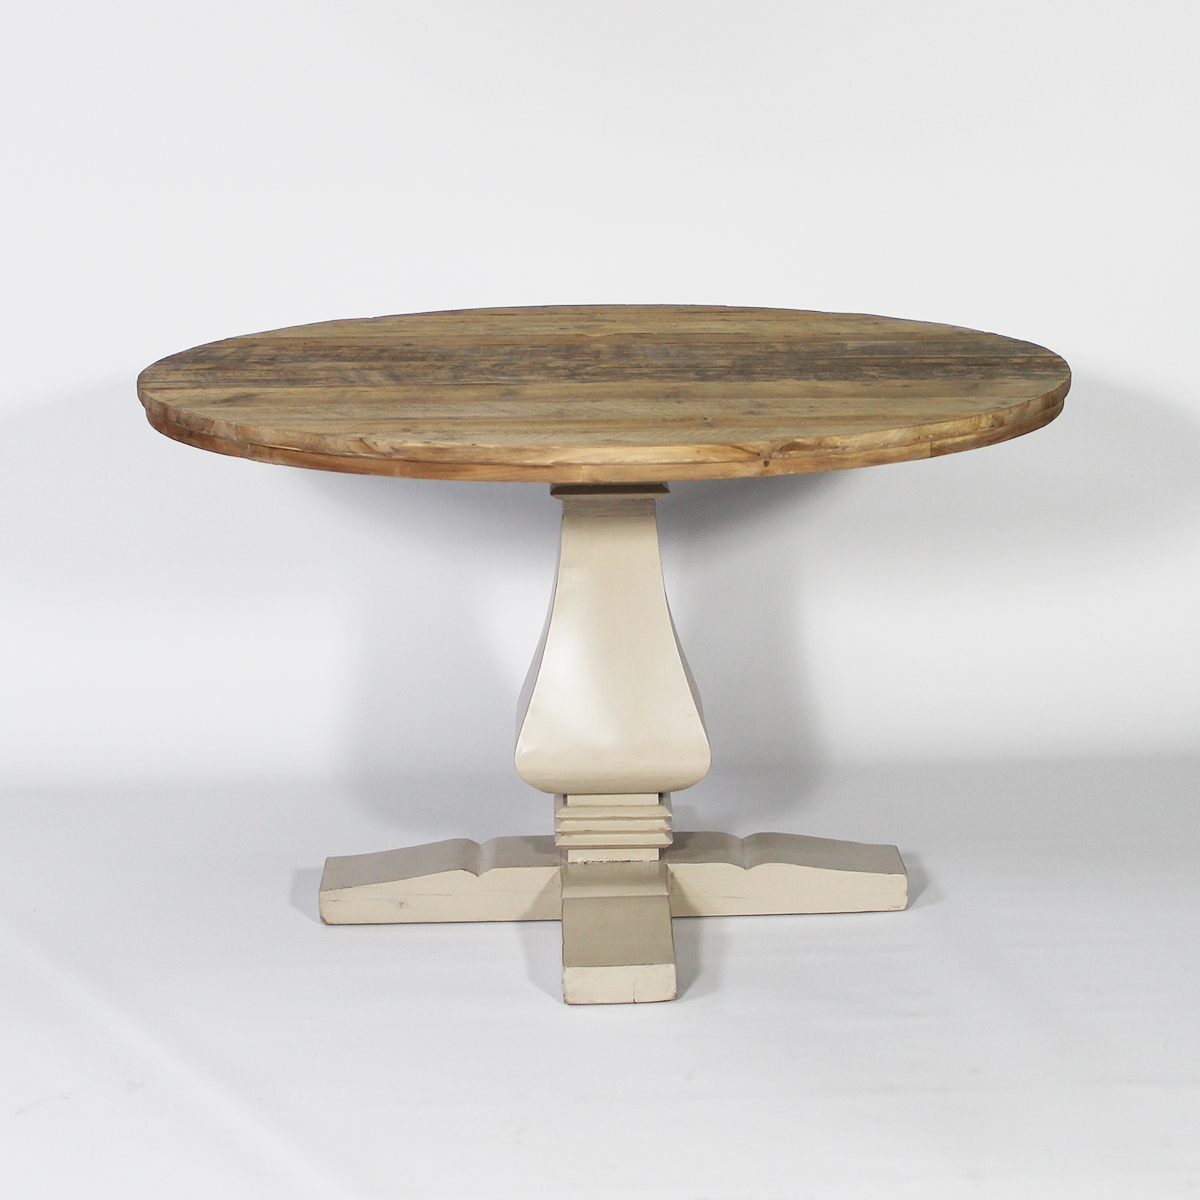 Table ronde baroque pied central en bois taupe taupe ebay for Table ronde bois pied central